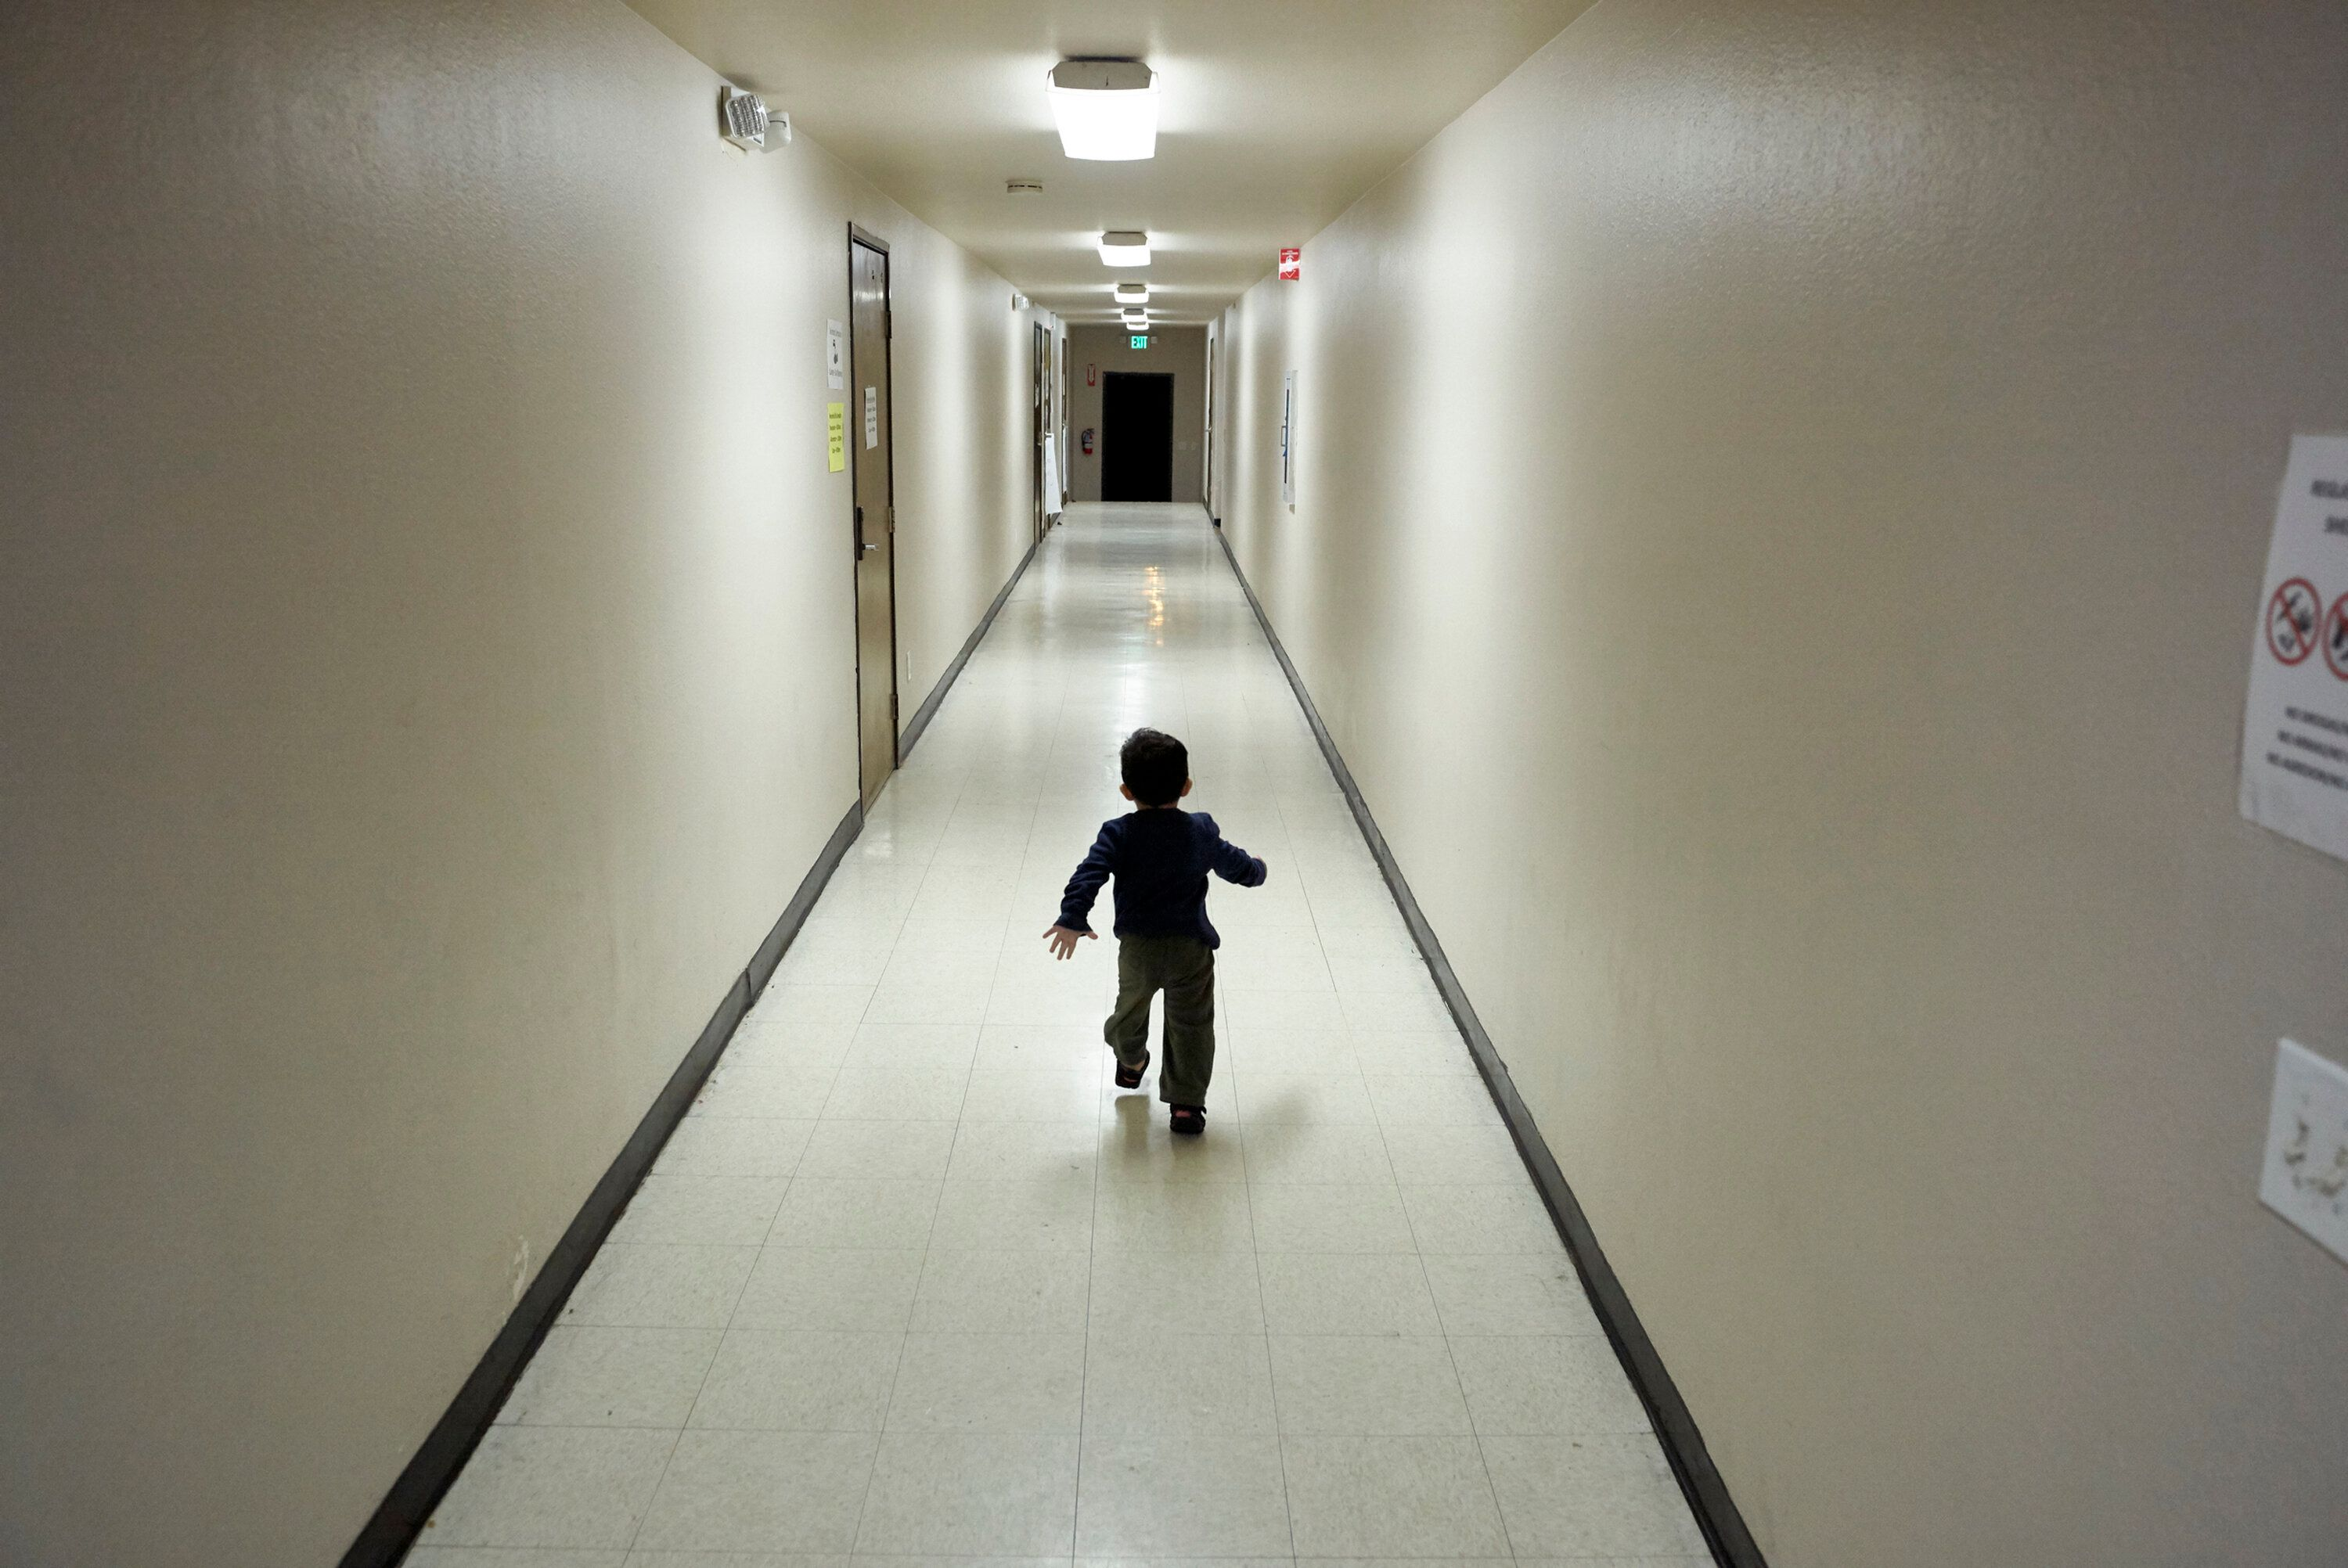 FILE - In this Dec. 11, 2018 file photo, an asylum-seeking boy from Central America runs down a hallway after arriving from an immigration detention center to a shelter in San Diego. Immigrant advocates say they are suing the U.S. government for allegedly detaining immigrant children too long and improperly refusing to release them to relatives. Lawyers said Tuesday, Jan. 22, 2019 they expanded a lawsuit filed last year in federal court in Alexandria, Va., to propose including the cases of more than 10,000 children. (AP Photo/Gregory Bull, file)